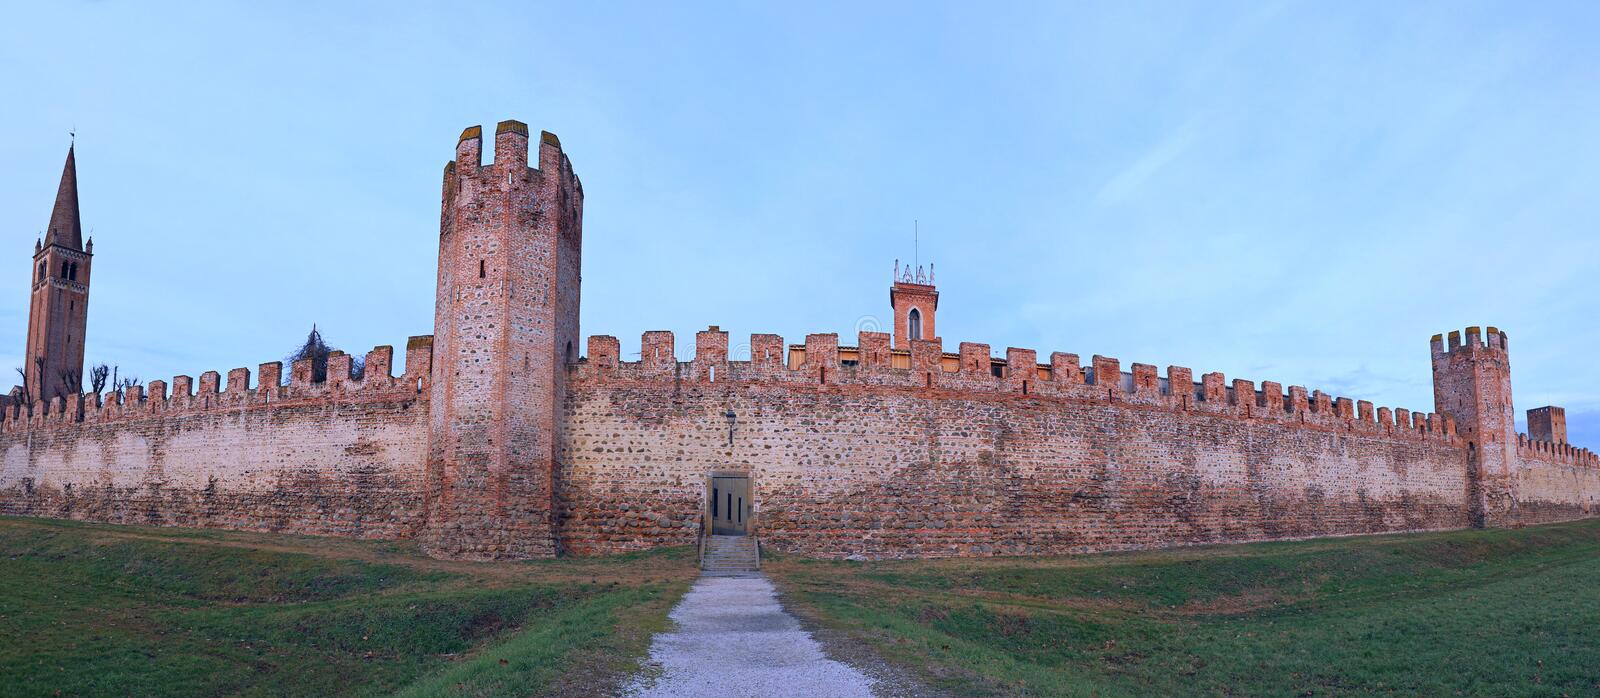 42 Mega Pixel Of Ancient City Wall of Montagnana Town in Italy. 42 Mega Pixel Of Ancient City Wall of Montagnana Town in Northern Italy near Padua stock photography